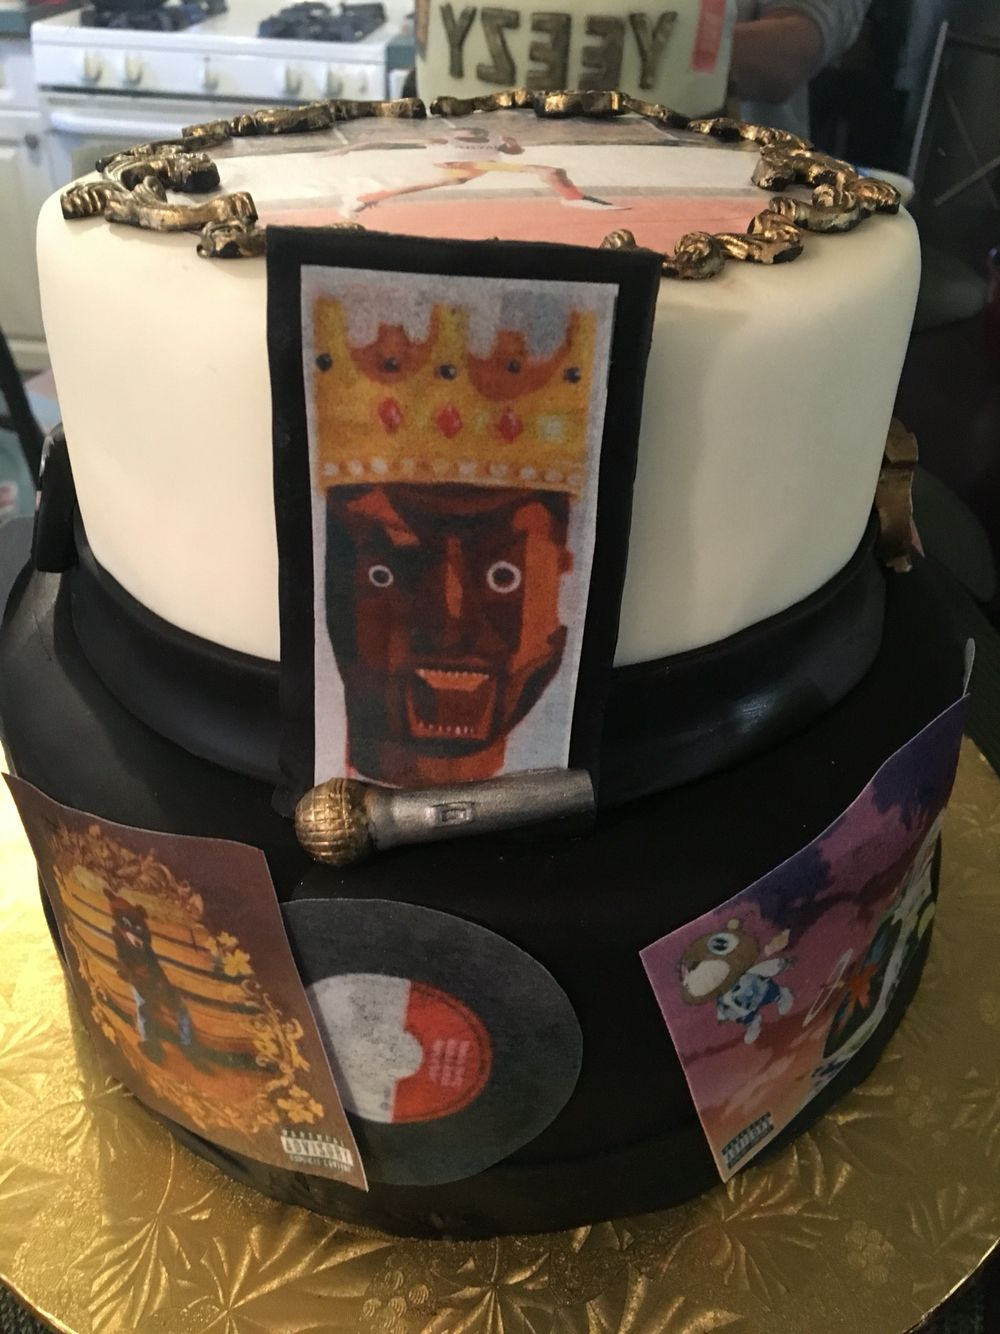 Kanye West Album Inspired Birthday Cake With Gold Detail